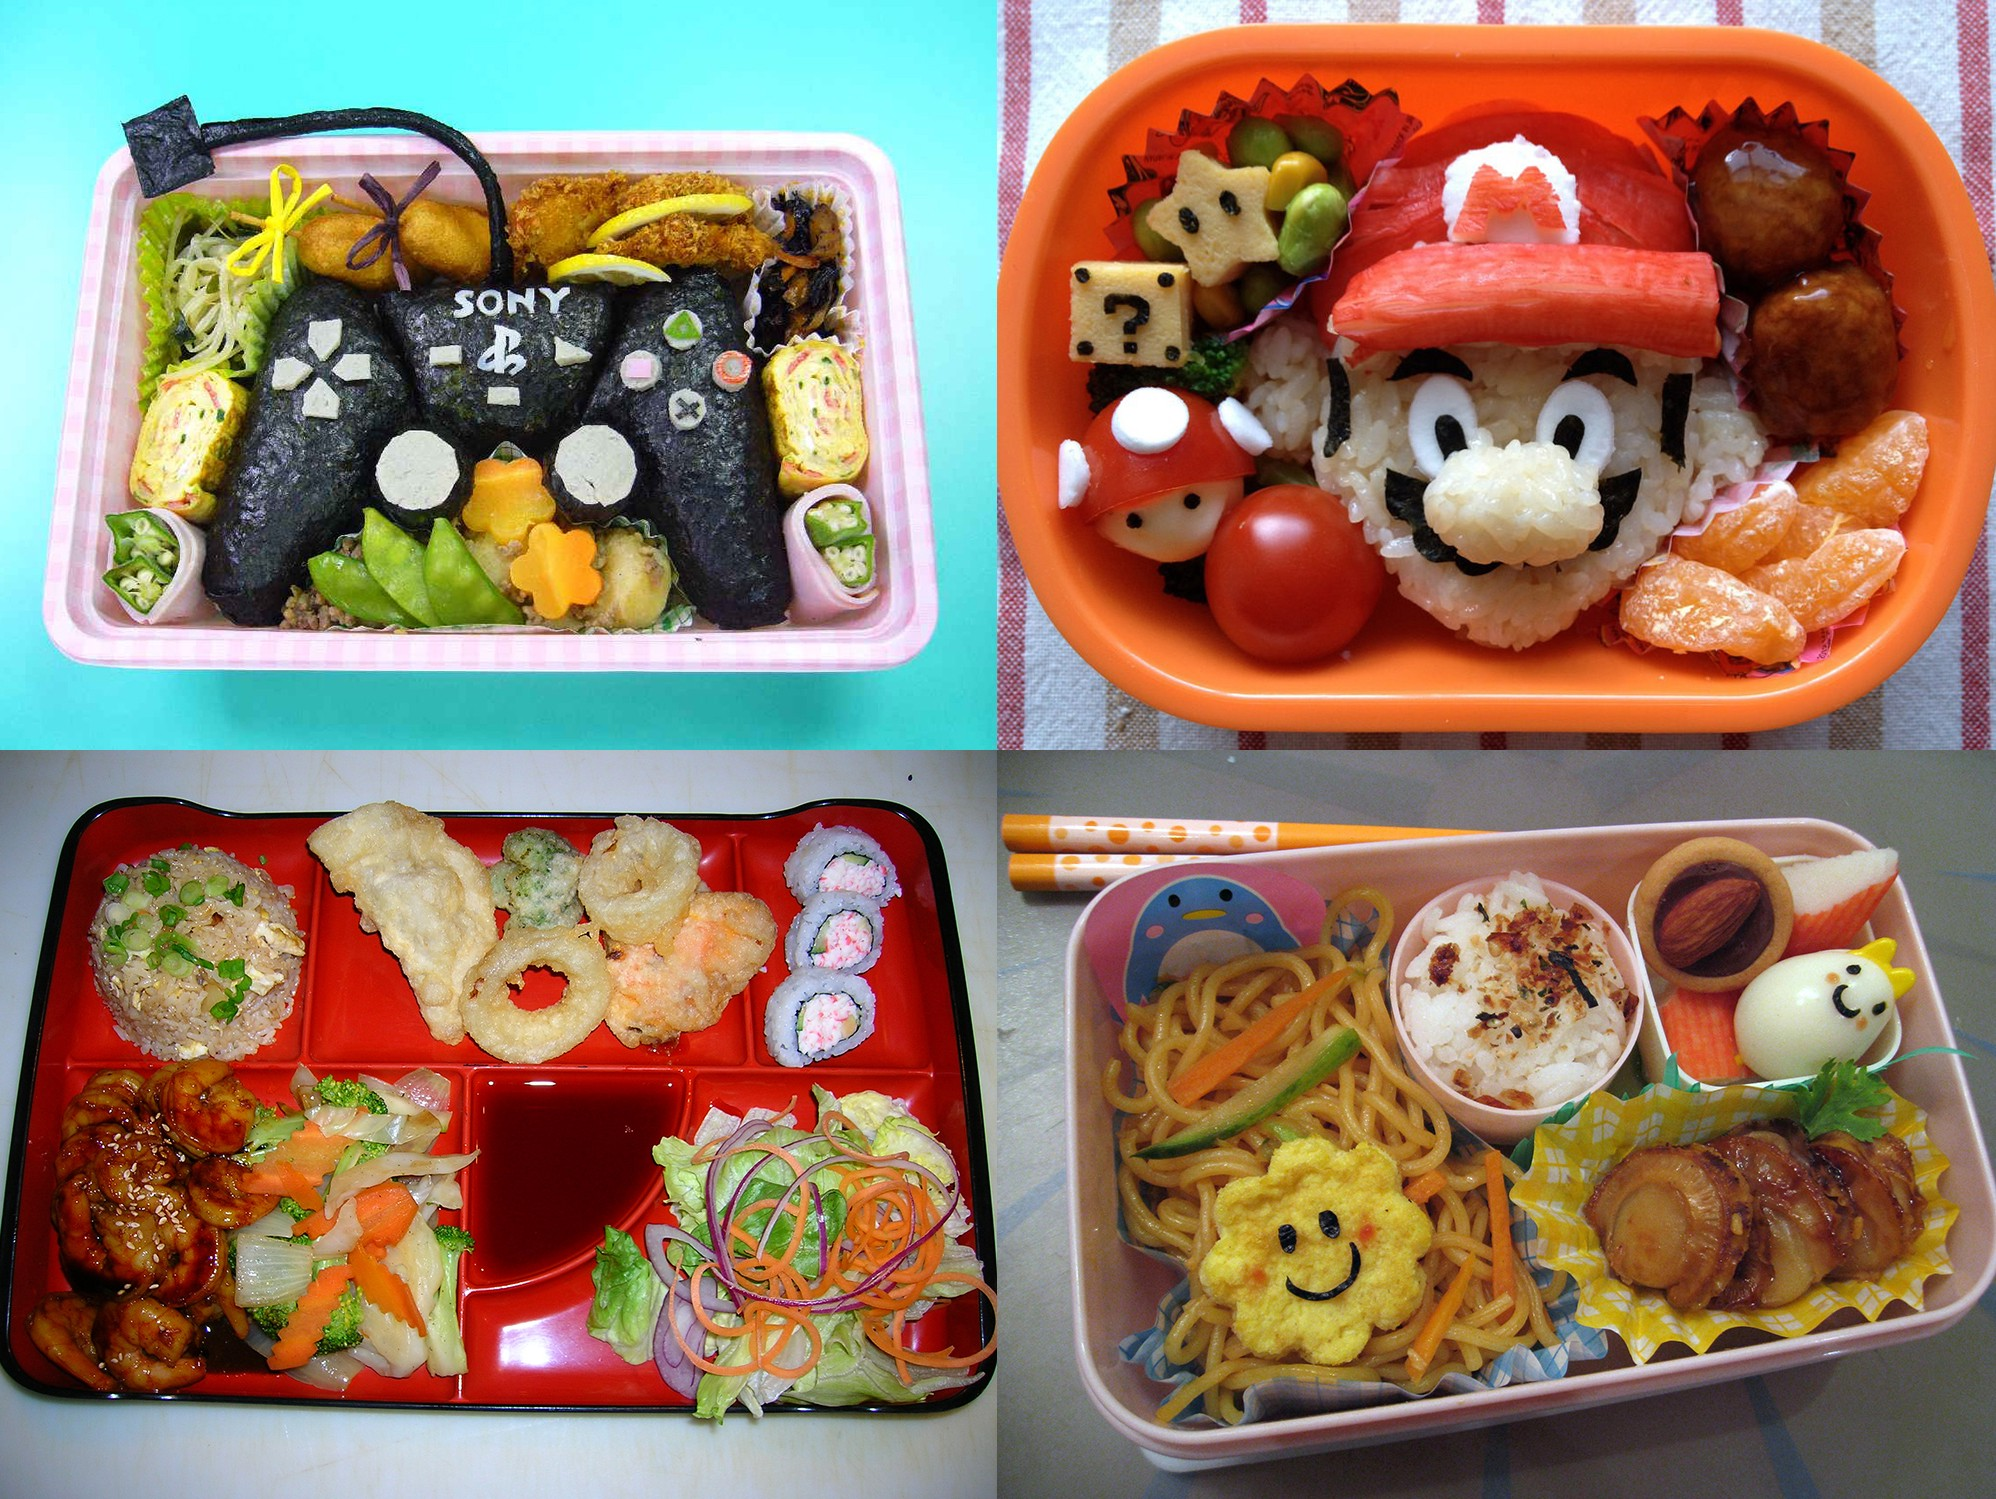 The controversial history of the bento box - Timeline